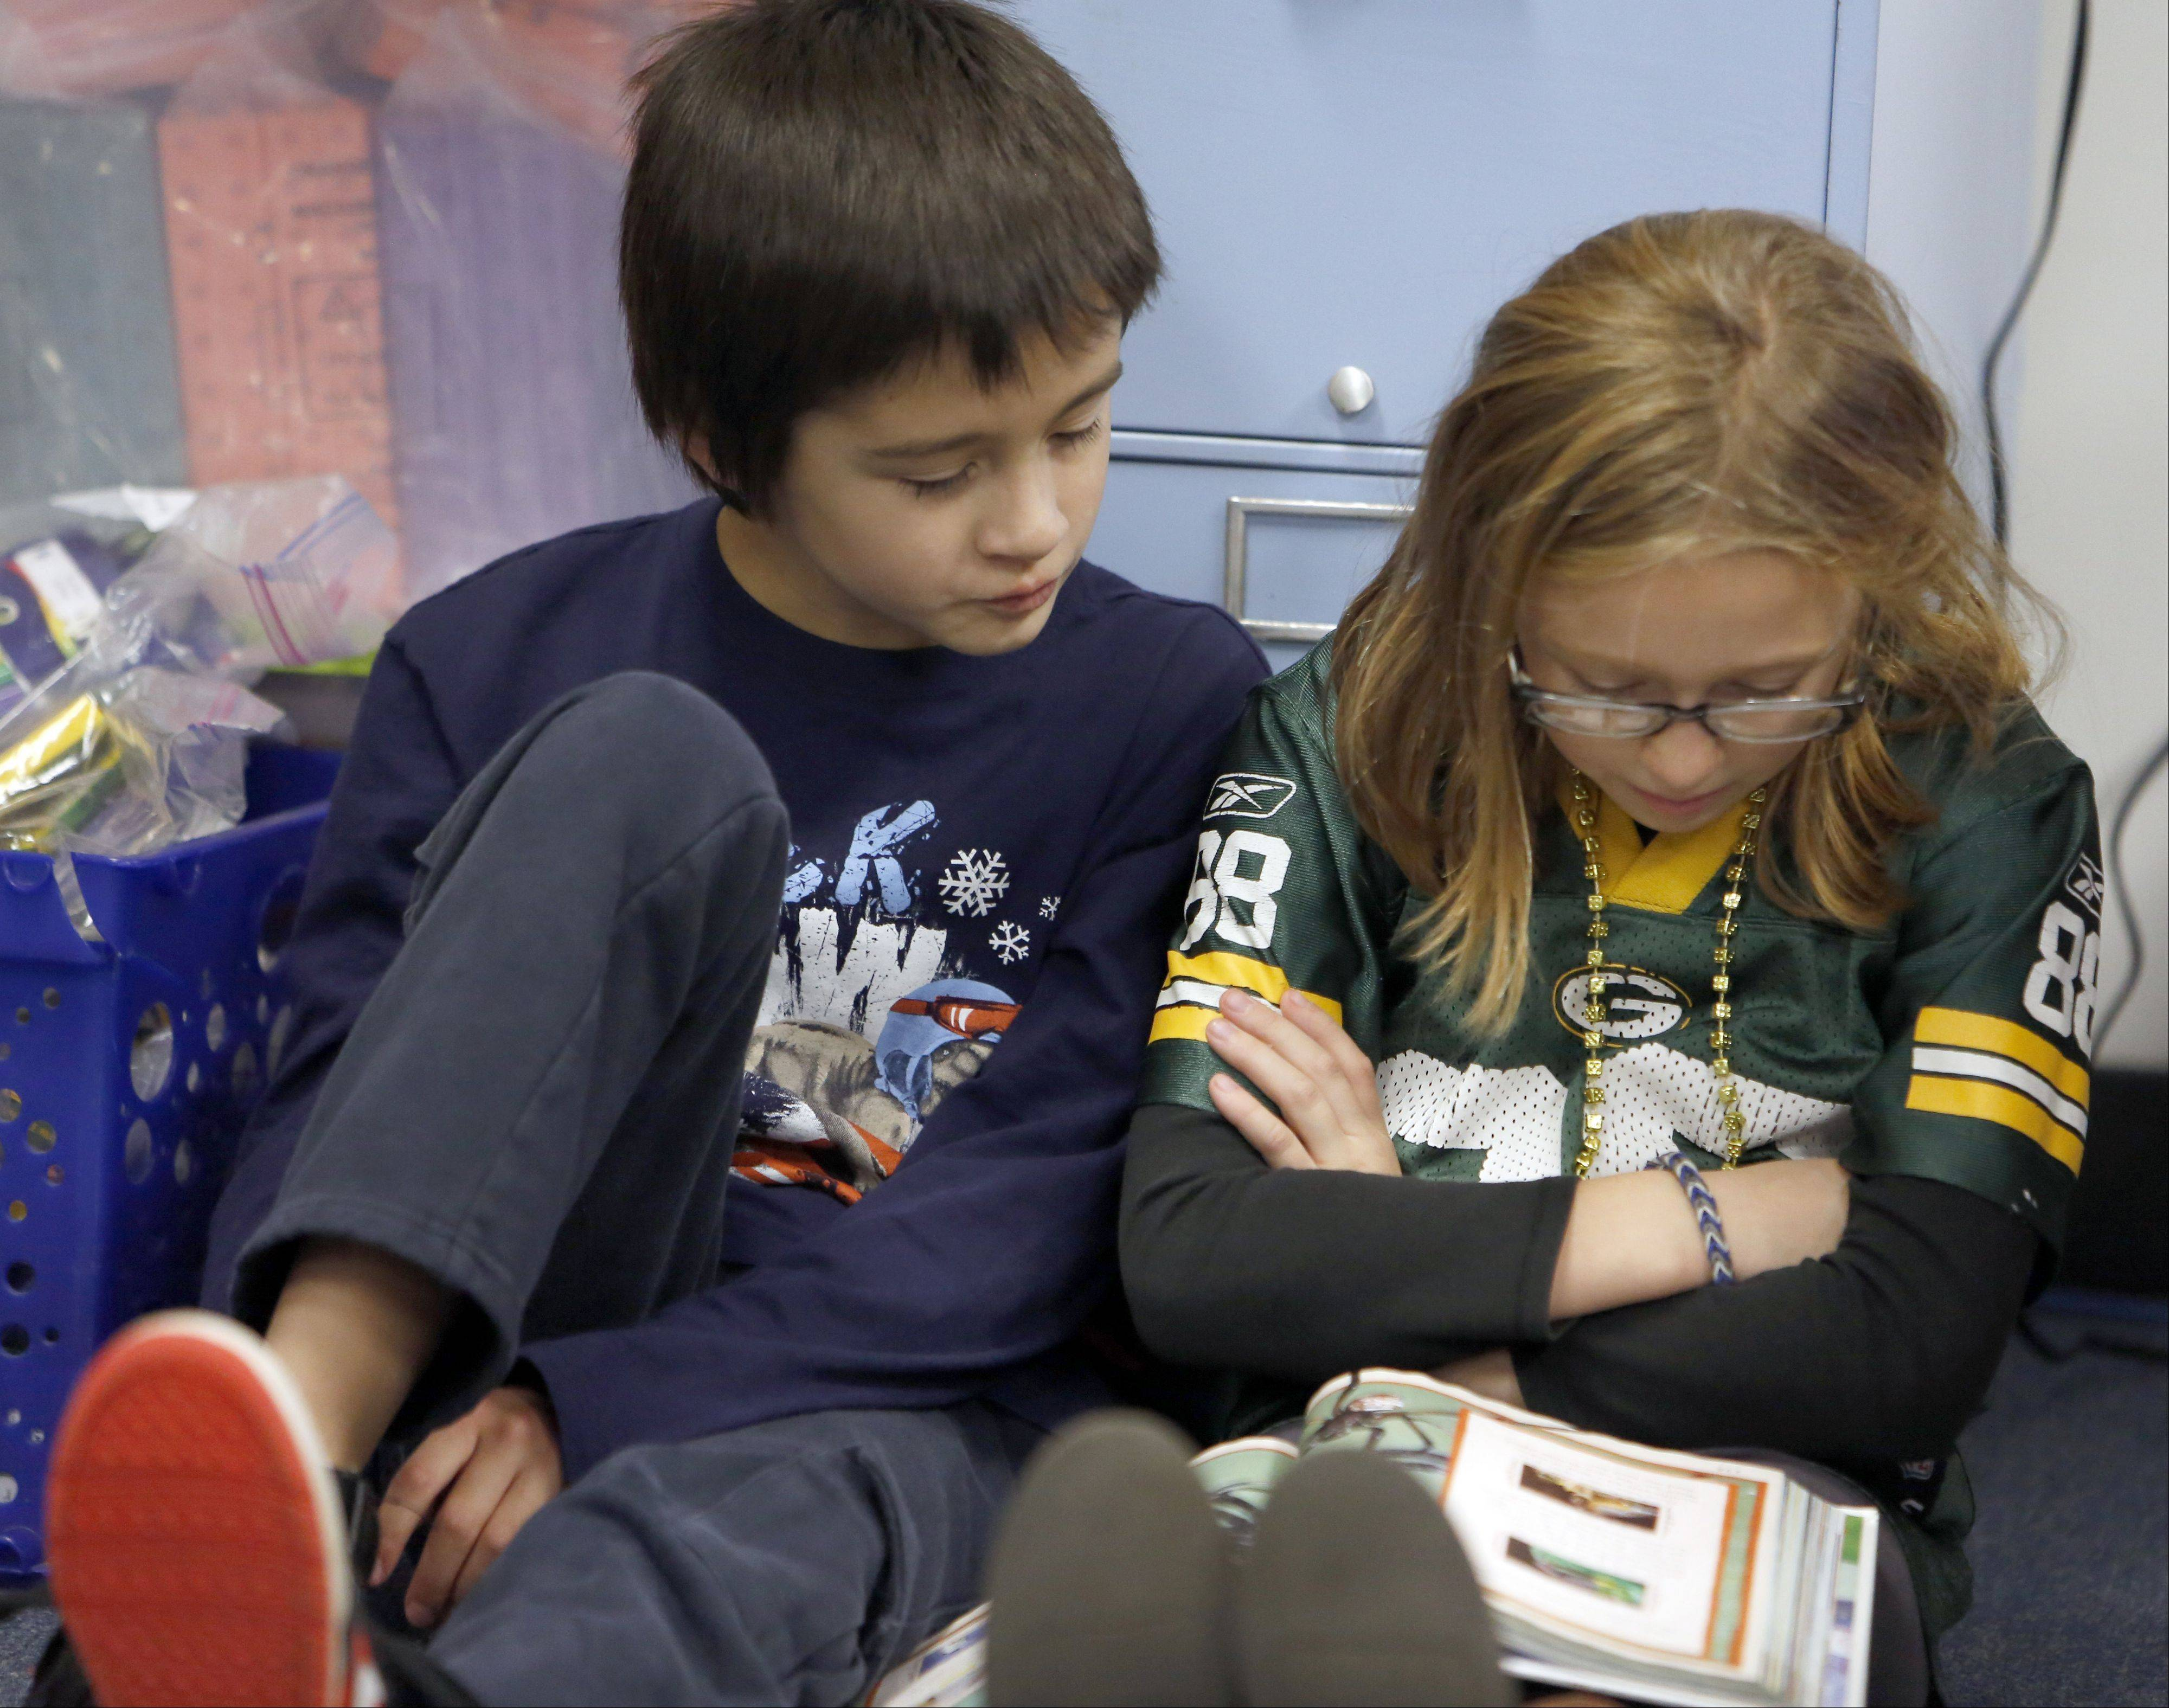 Marco Conti and Mia Clemons, both 8, practice reading at Algonquin Road School in Fox River Grove.